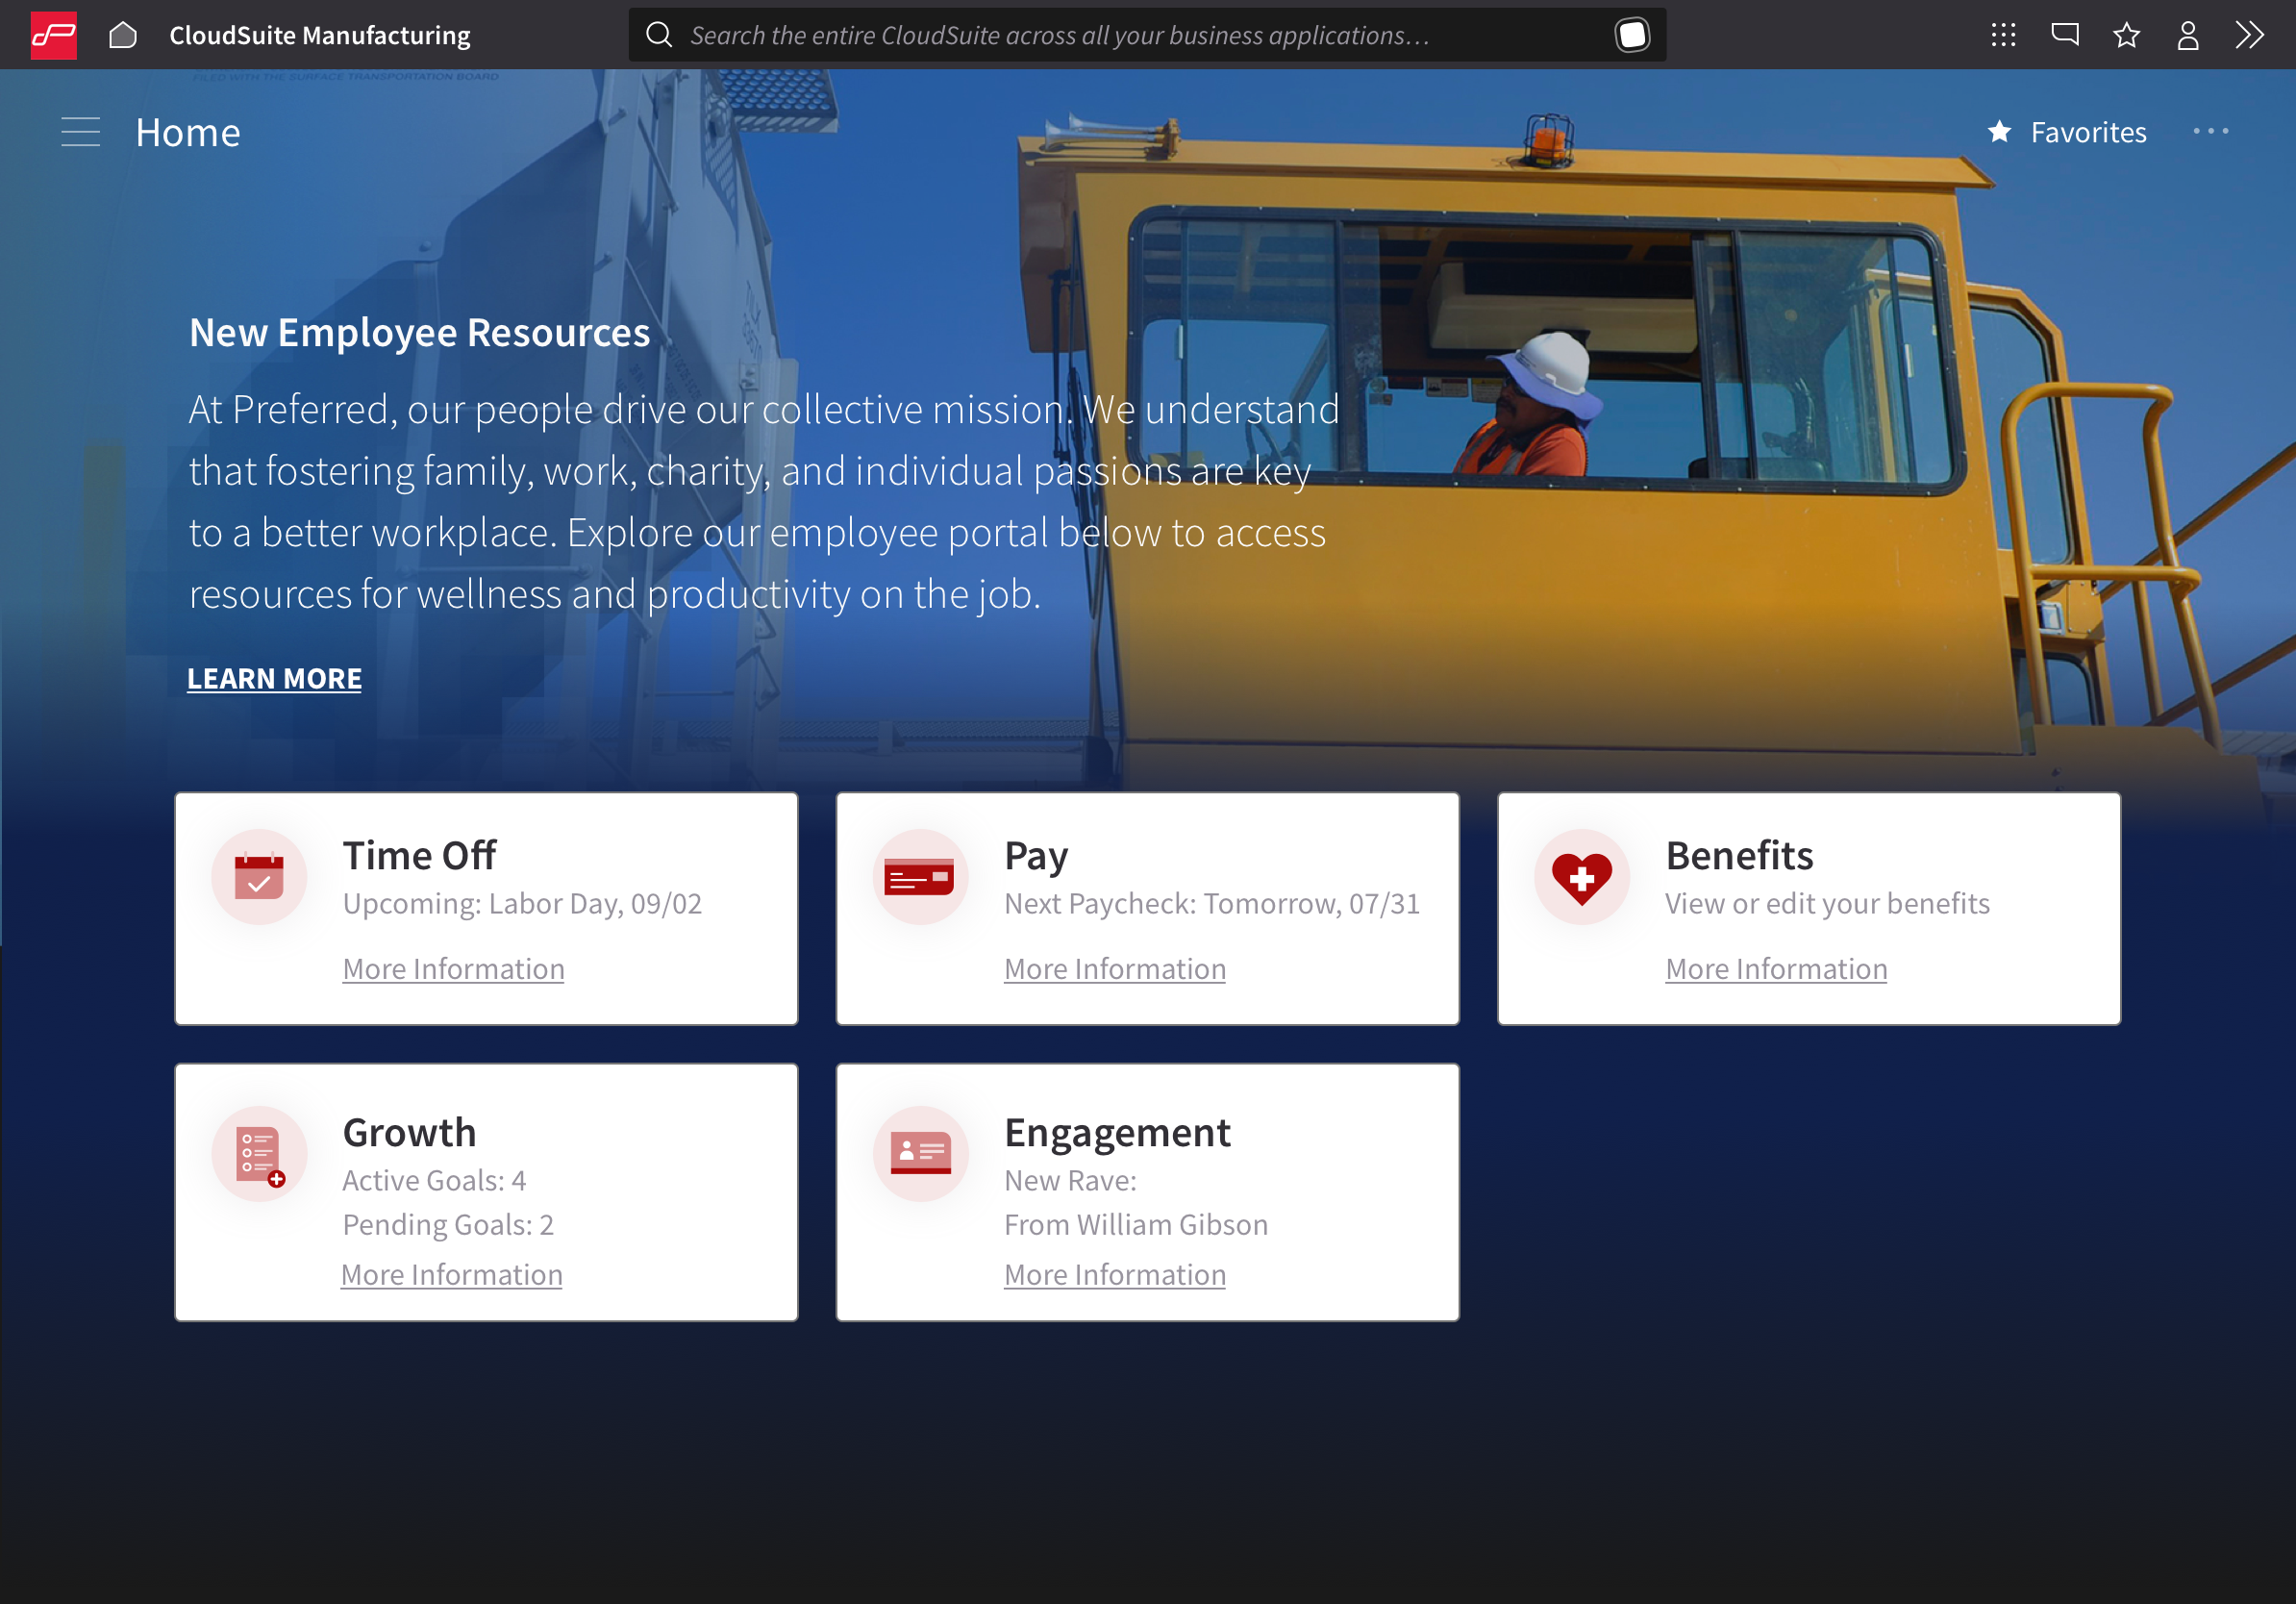 HCM_Homepage_Manufacturing_semplice